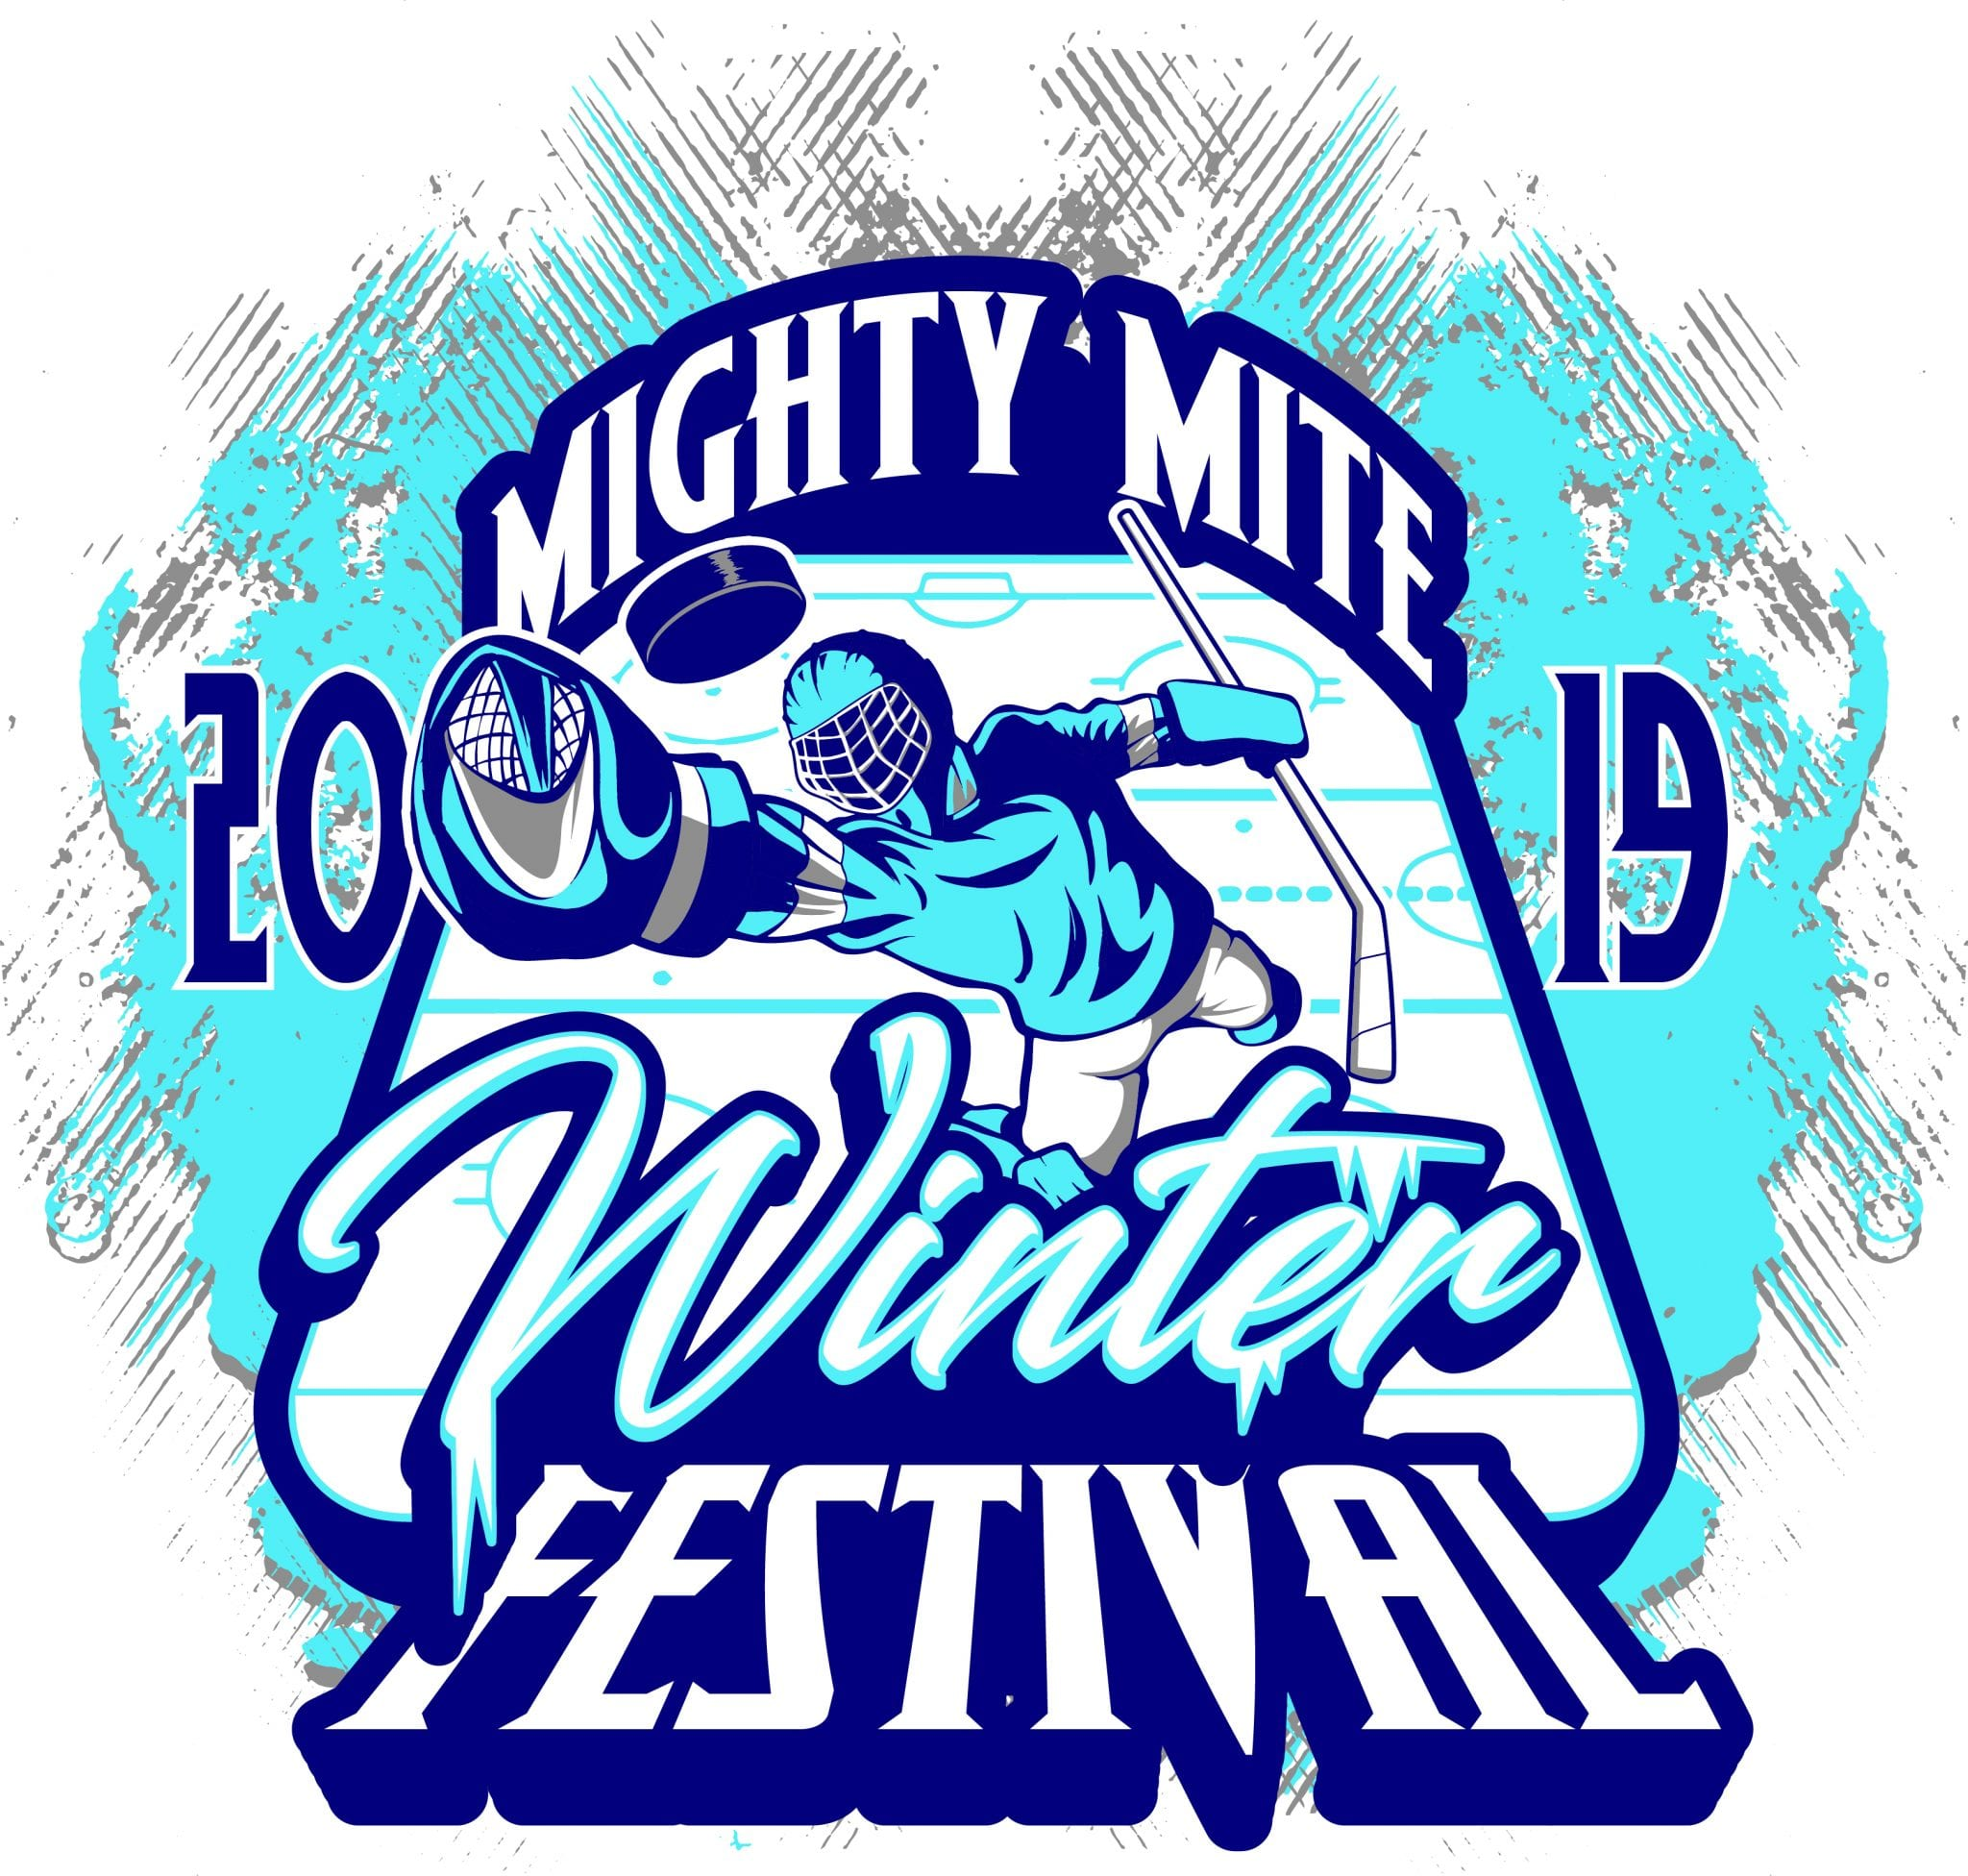 HOCKEY MIGHTY MITE WINTER FESTIVAL 2019 T-shirt vector logo design for print.ai